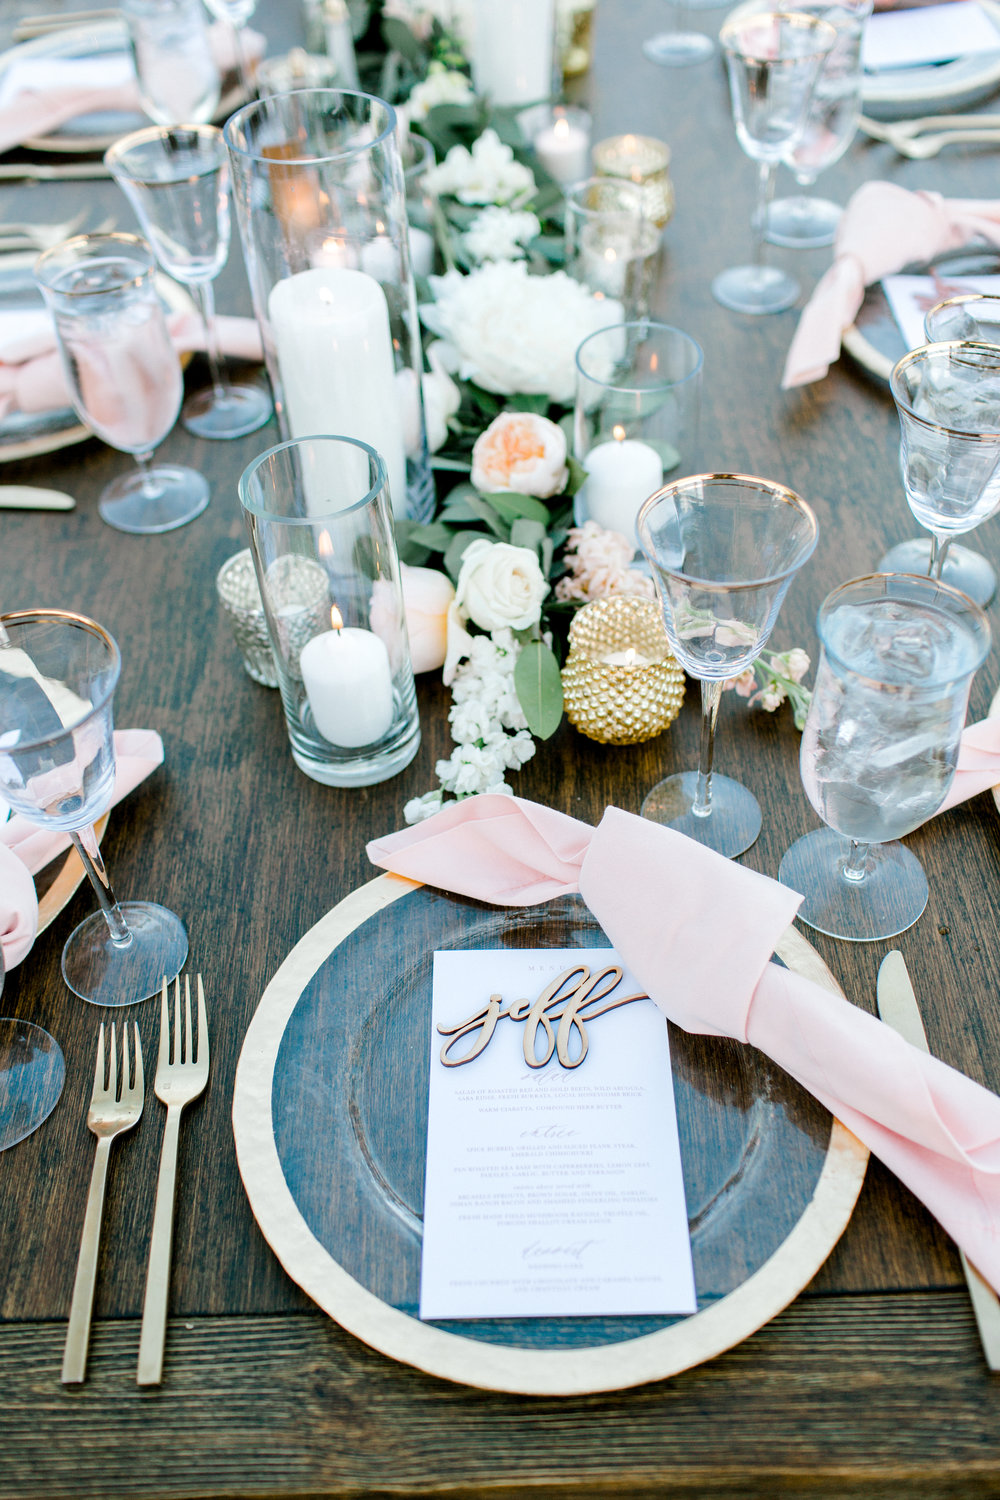 custom wedding table settings, rose gold wedding utensils, Los Angeles wedding, custom wedding glassware, outdoor wedding, custom wedding decorations     Orange Blossom Special Events